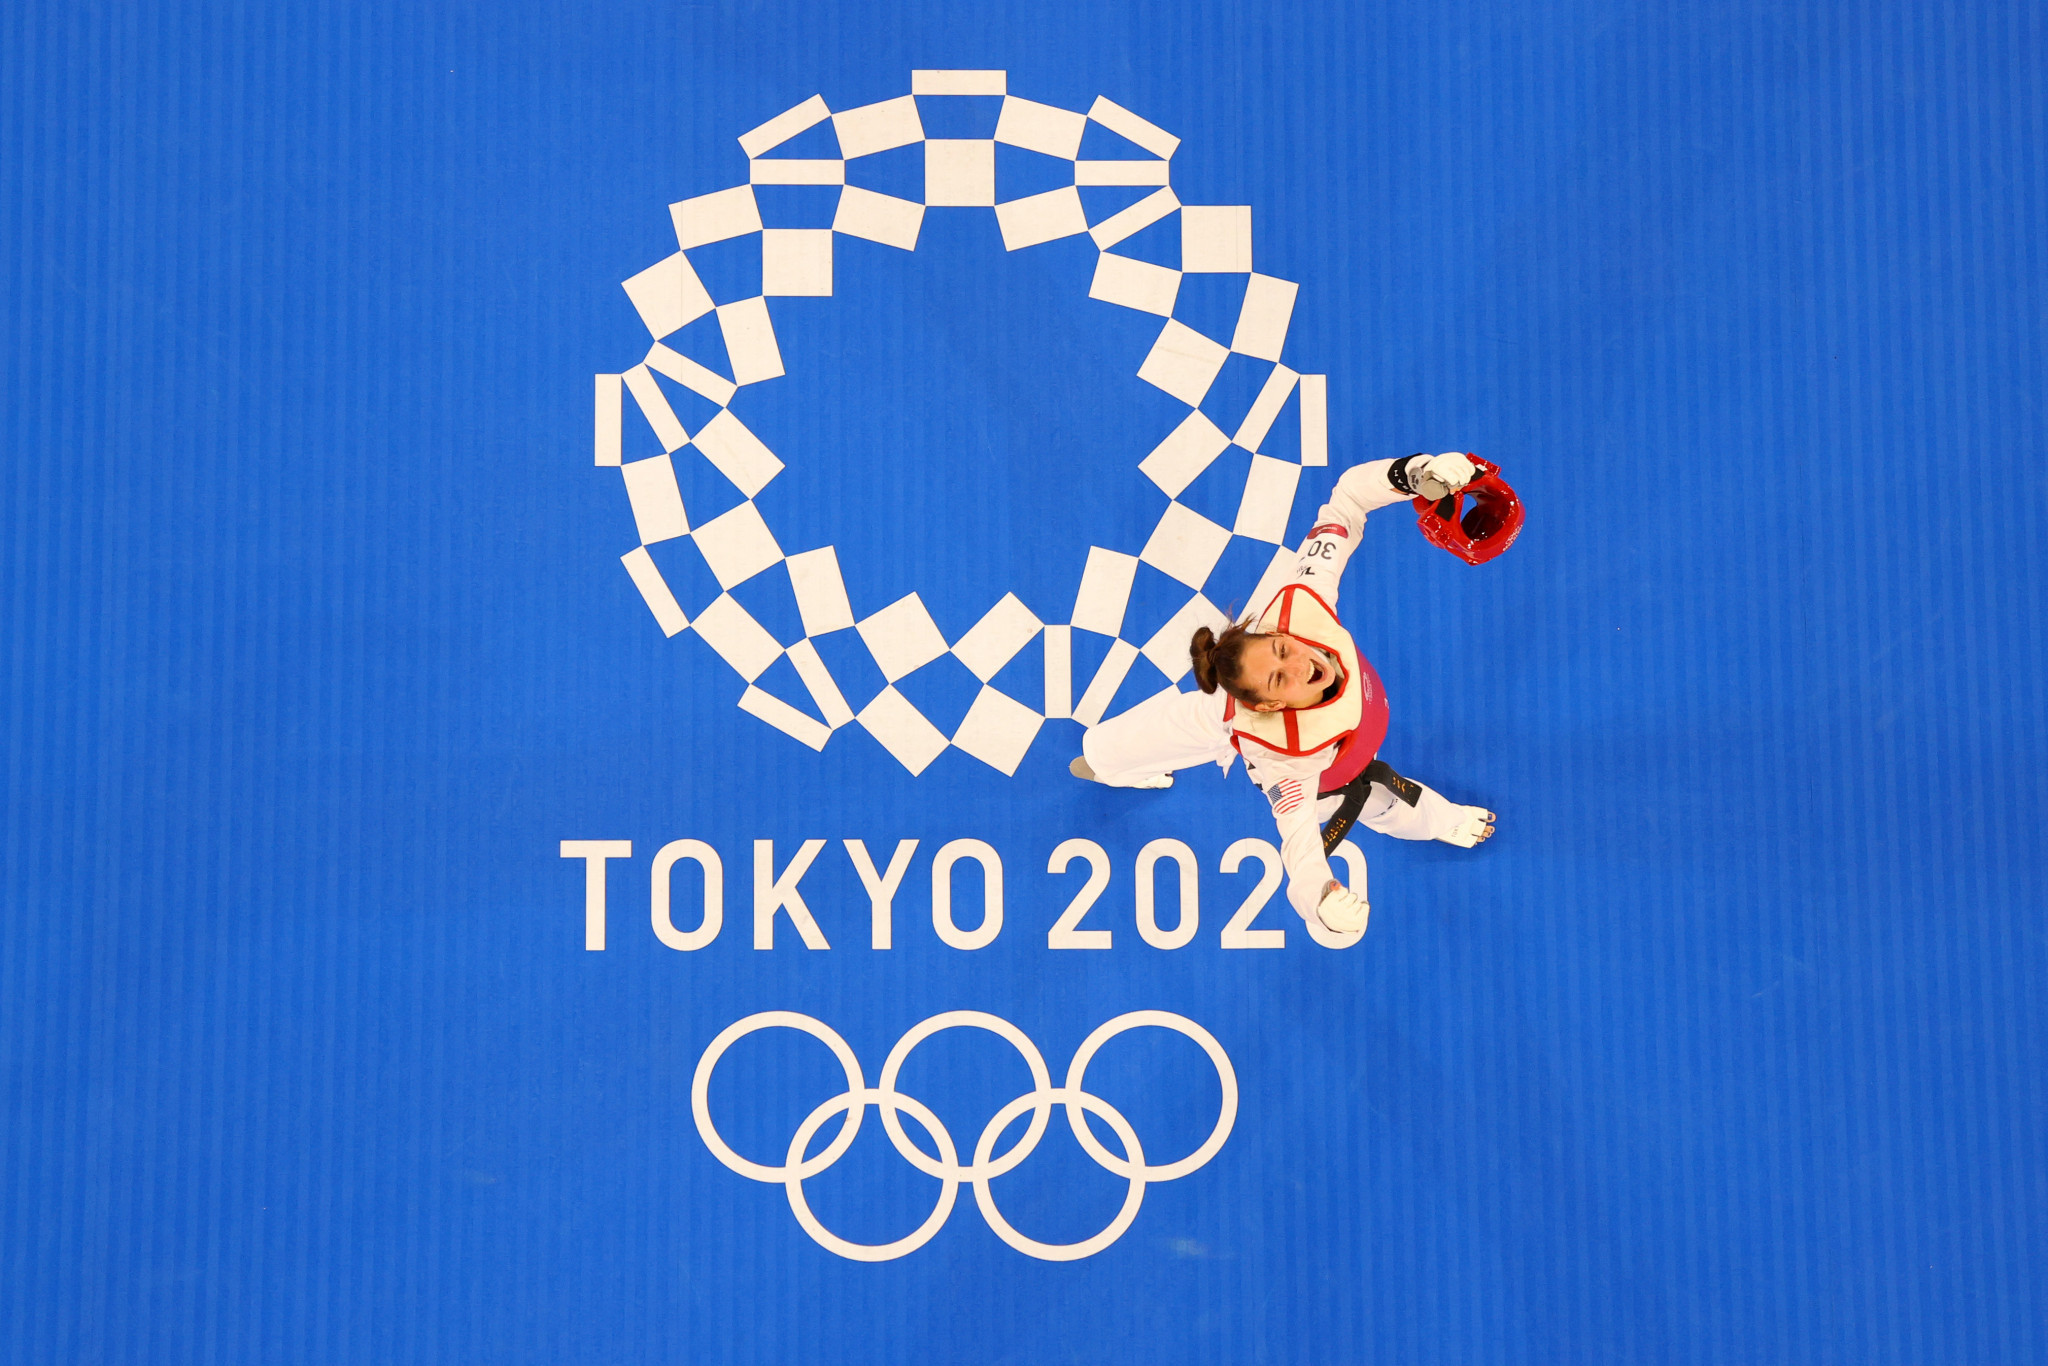 American Anastasija Zolotic was among the gold medallists on day two of competition at Tokyo 2020, claiming the women's under-52kg taekwondo crown ©Getty Images